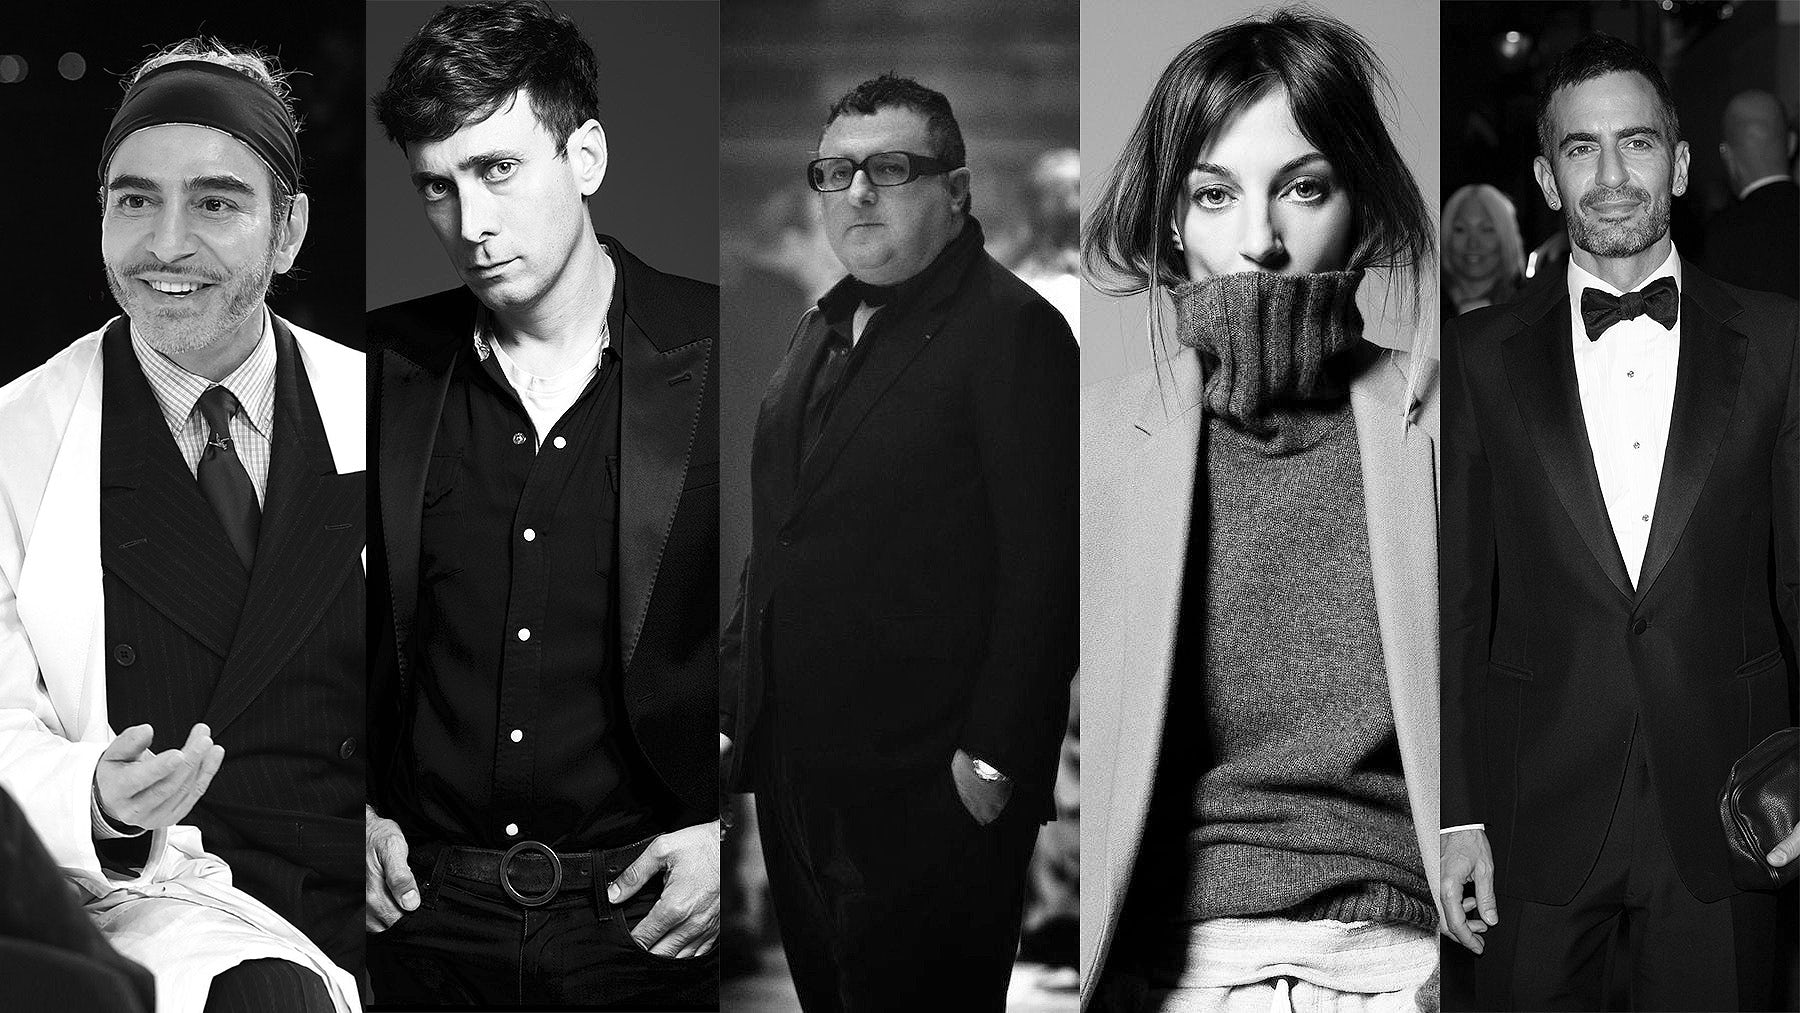 From left: John Galliano, Hedi Slimane, Alber Elbaz, Phoebe Philo and Marc Jacobs   Source: Courtesy